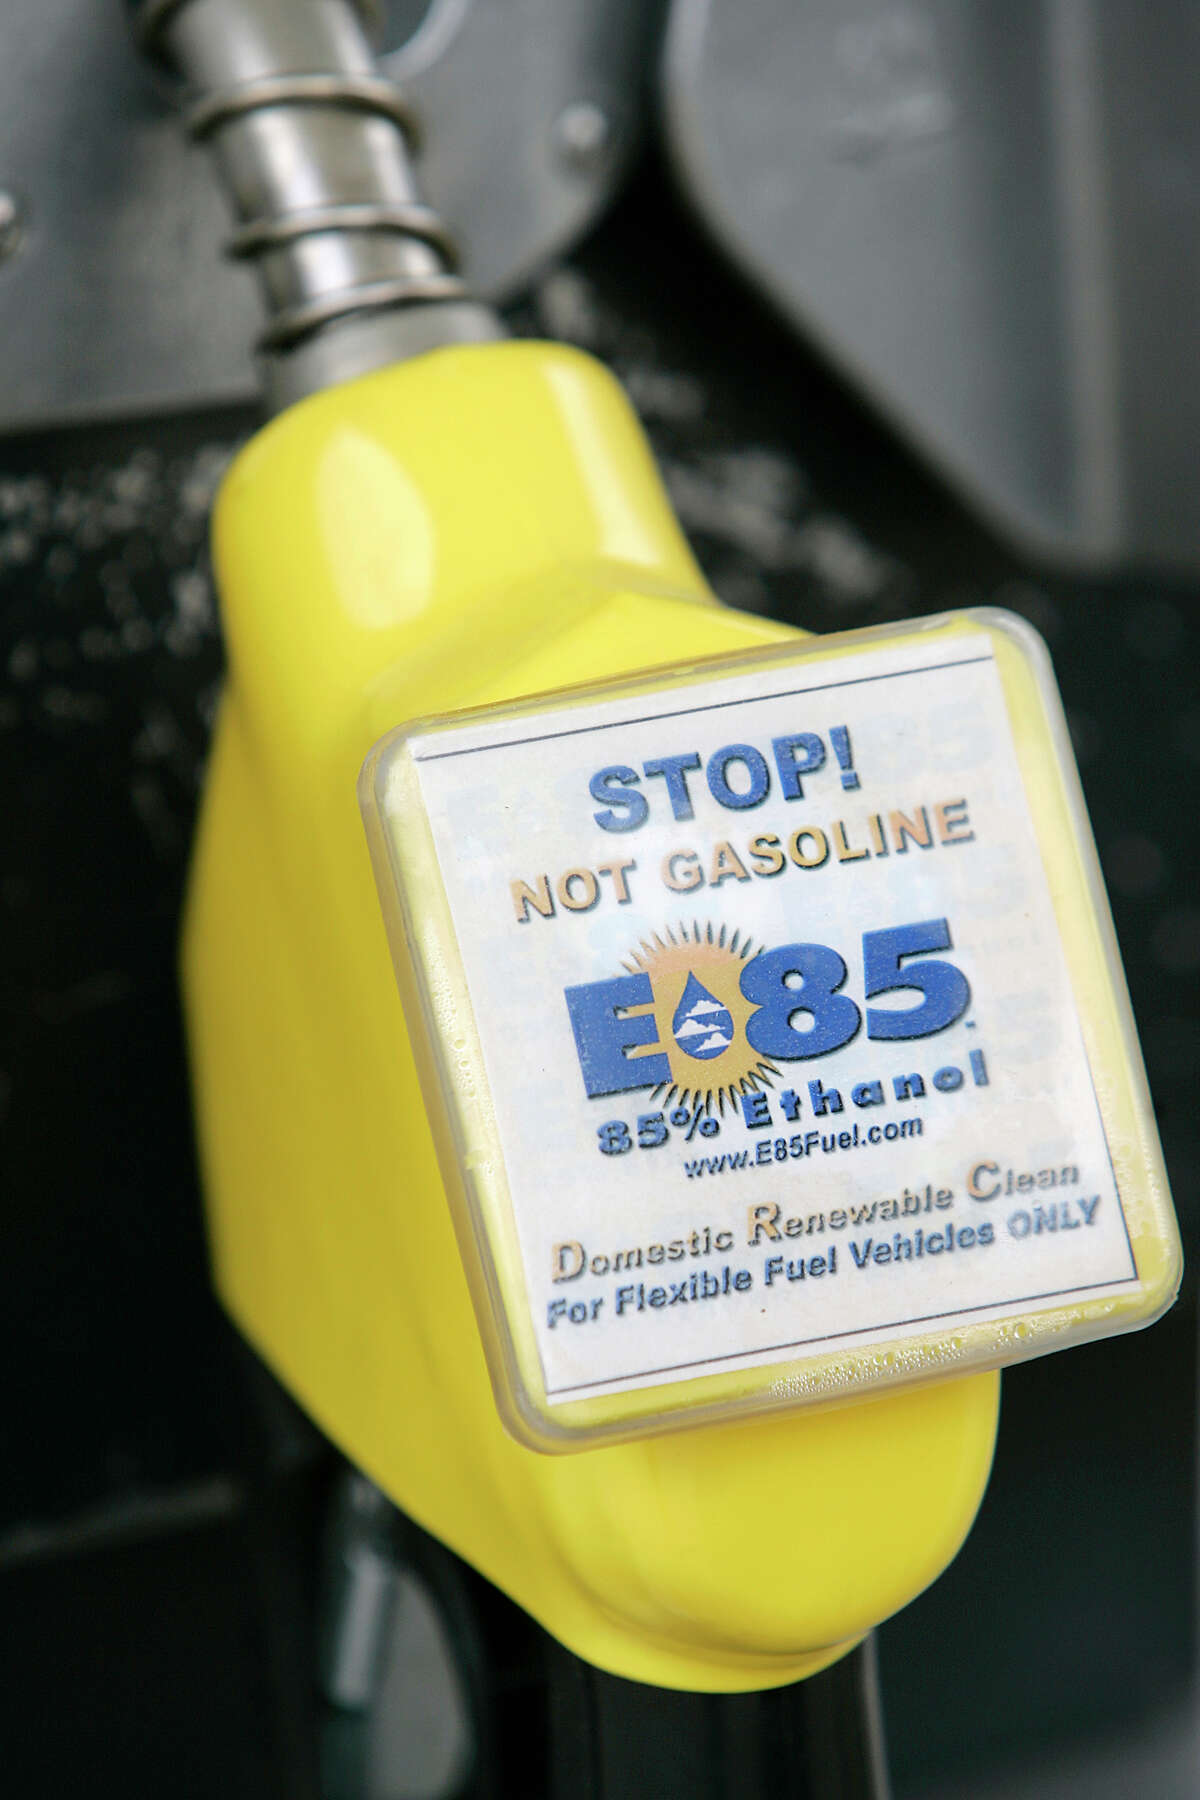 The Renewable Fuels Standard has caused a ruckus over the pros and cons of ethanol.